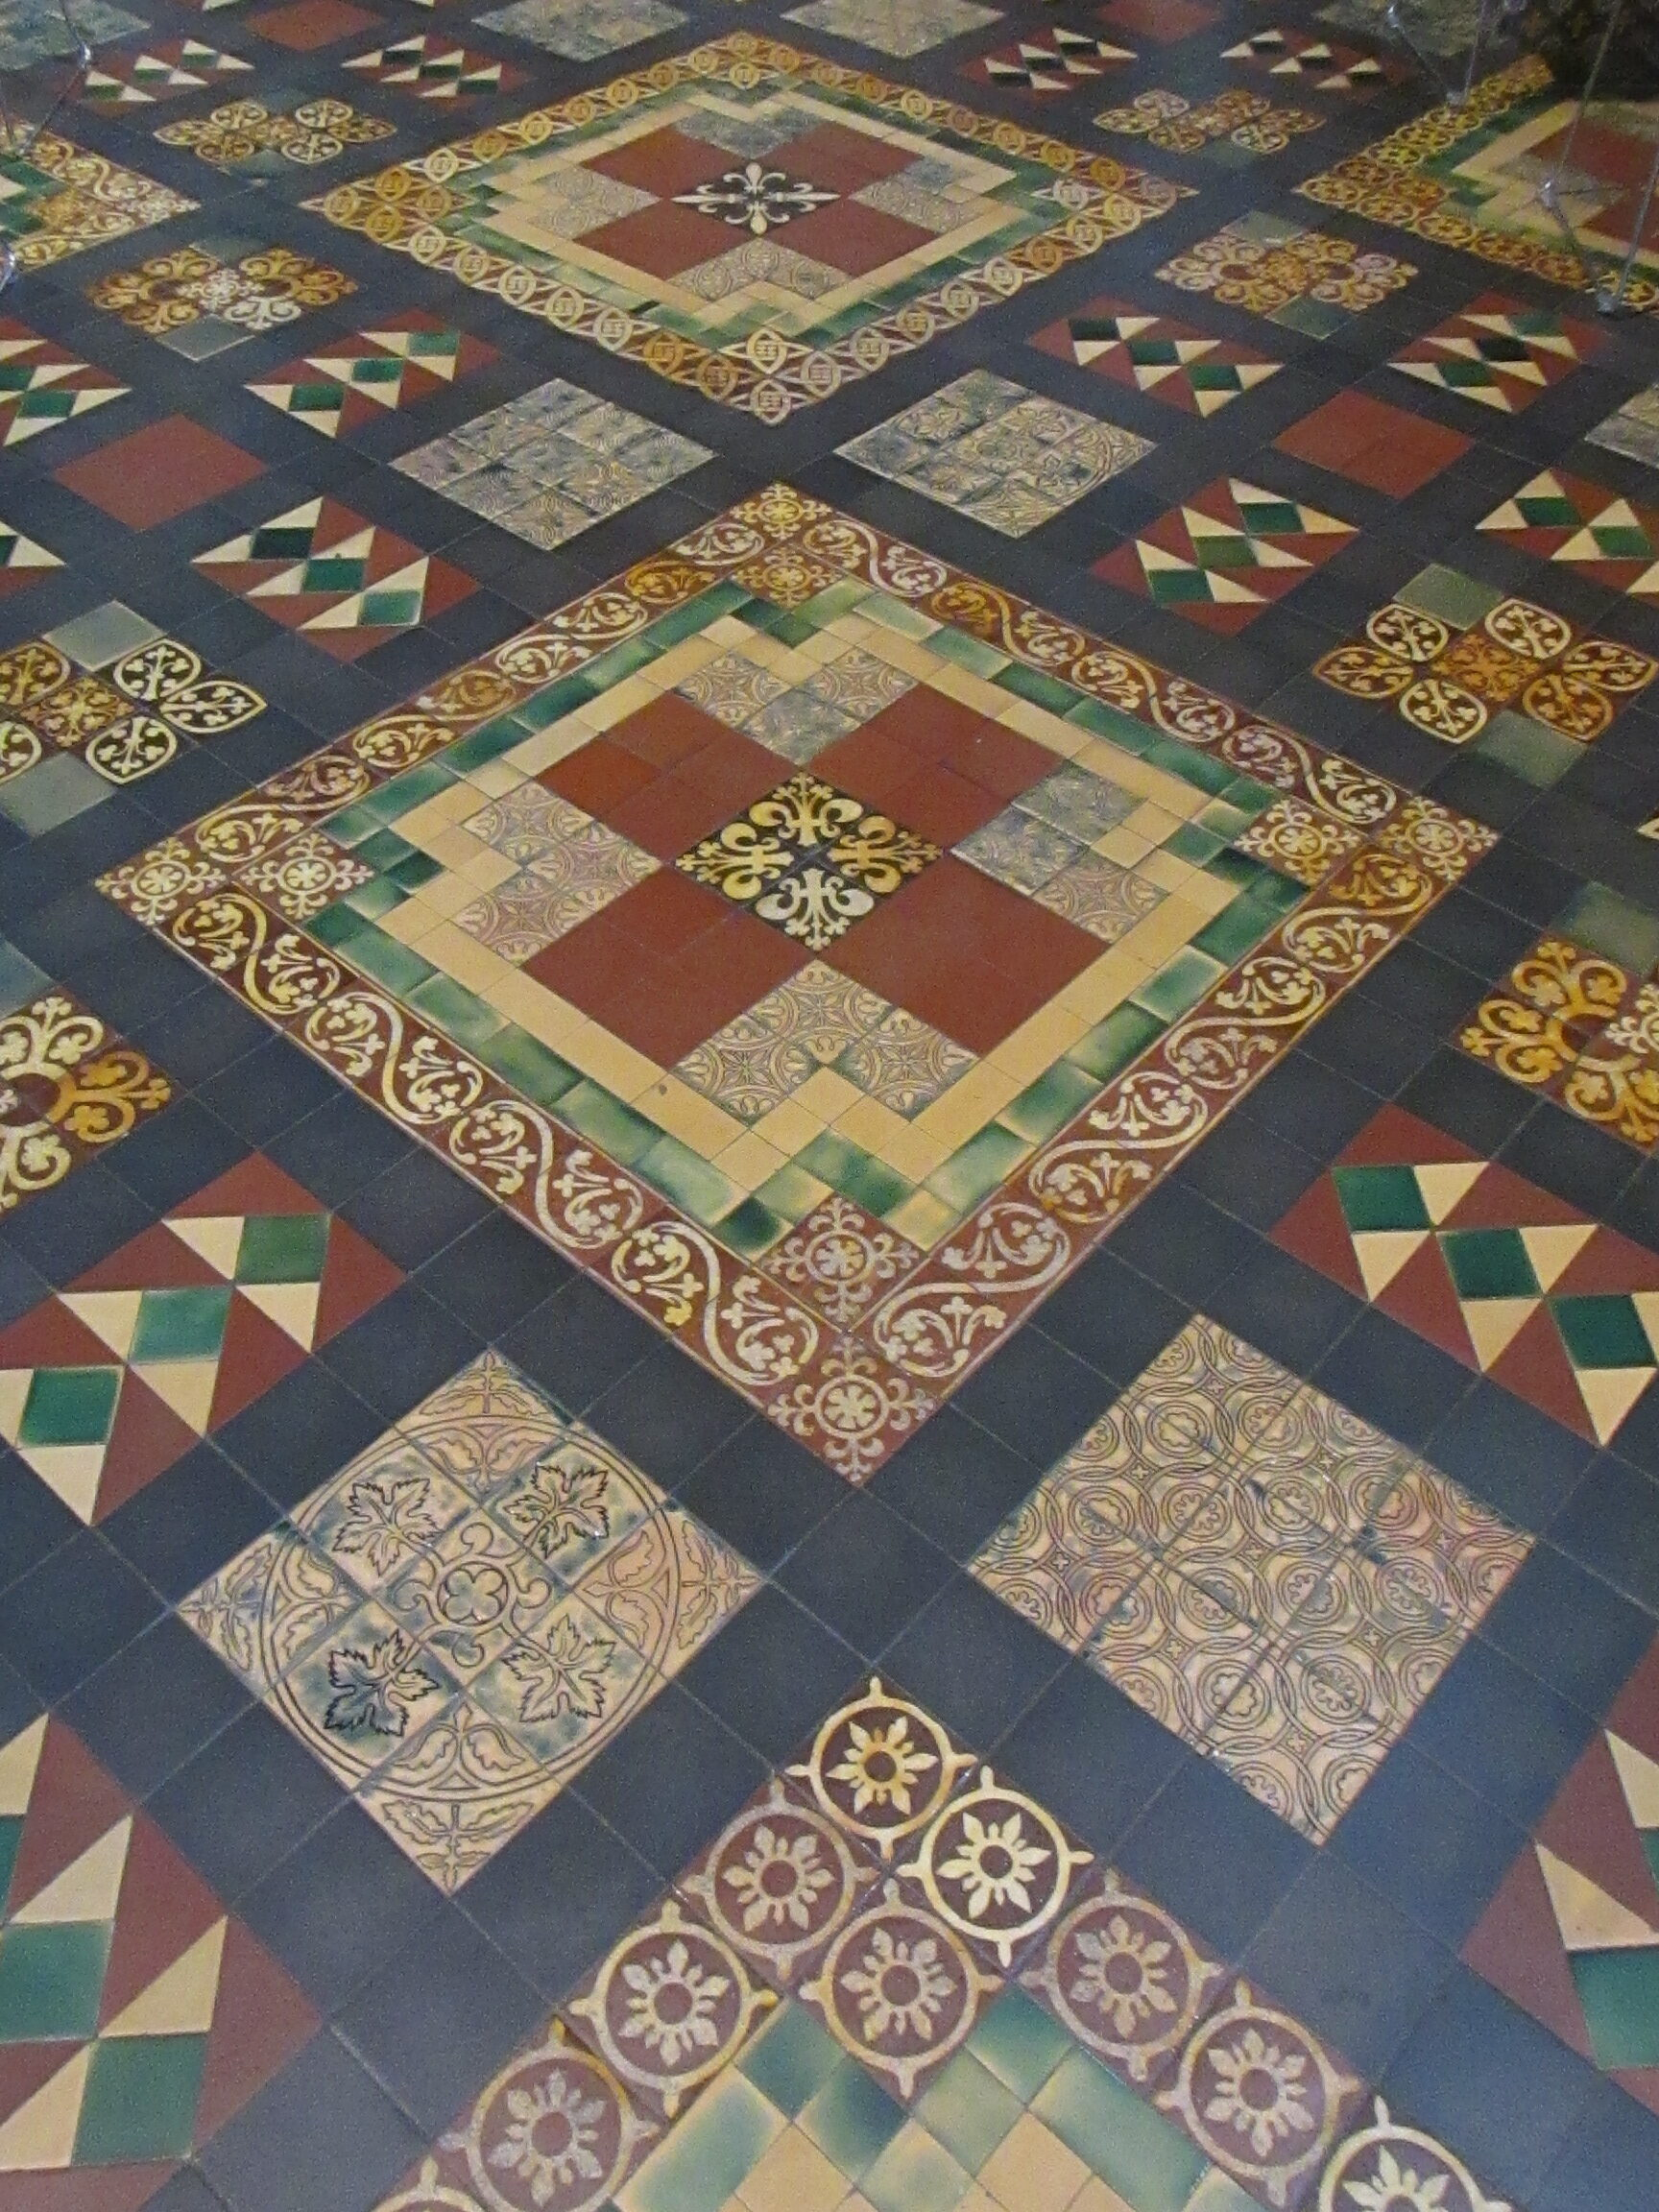 Tile floor at St. Patrick's Cathedral, Dublin